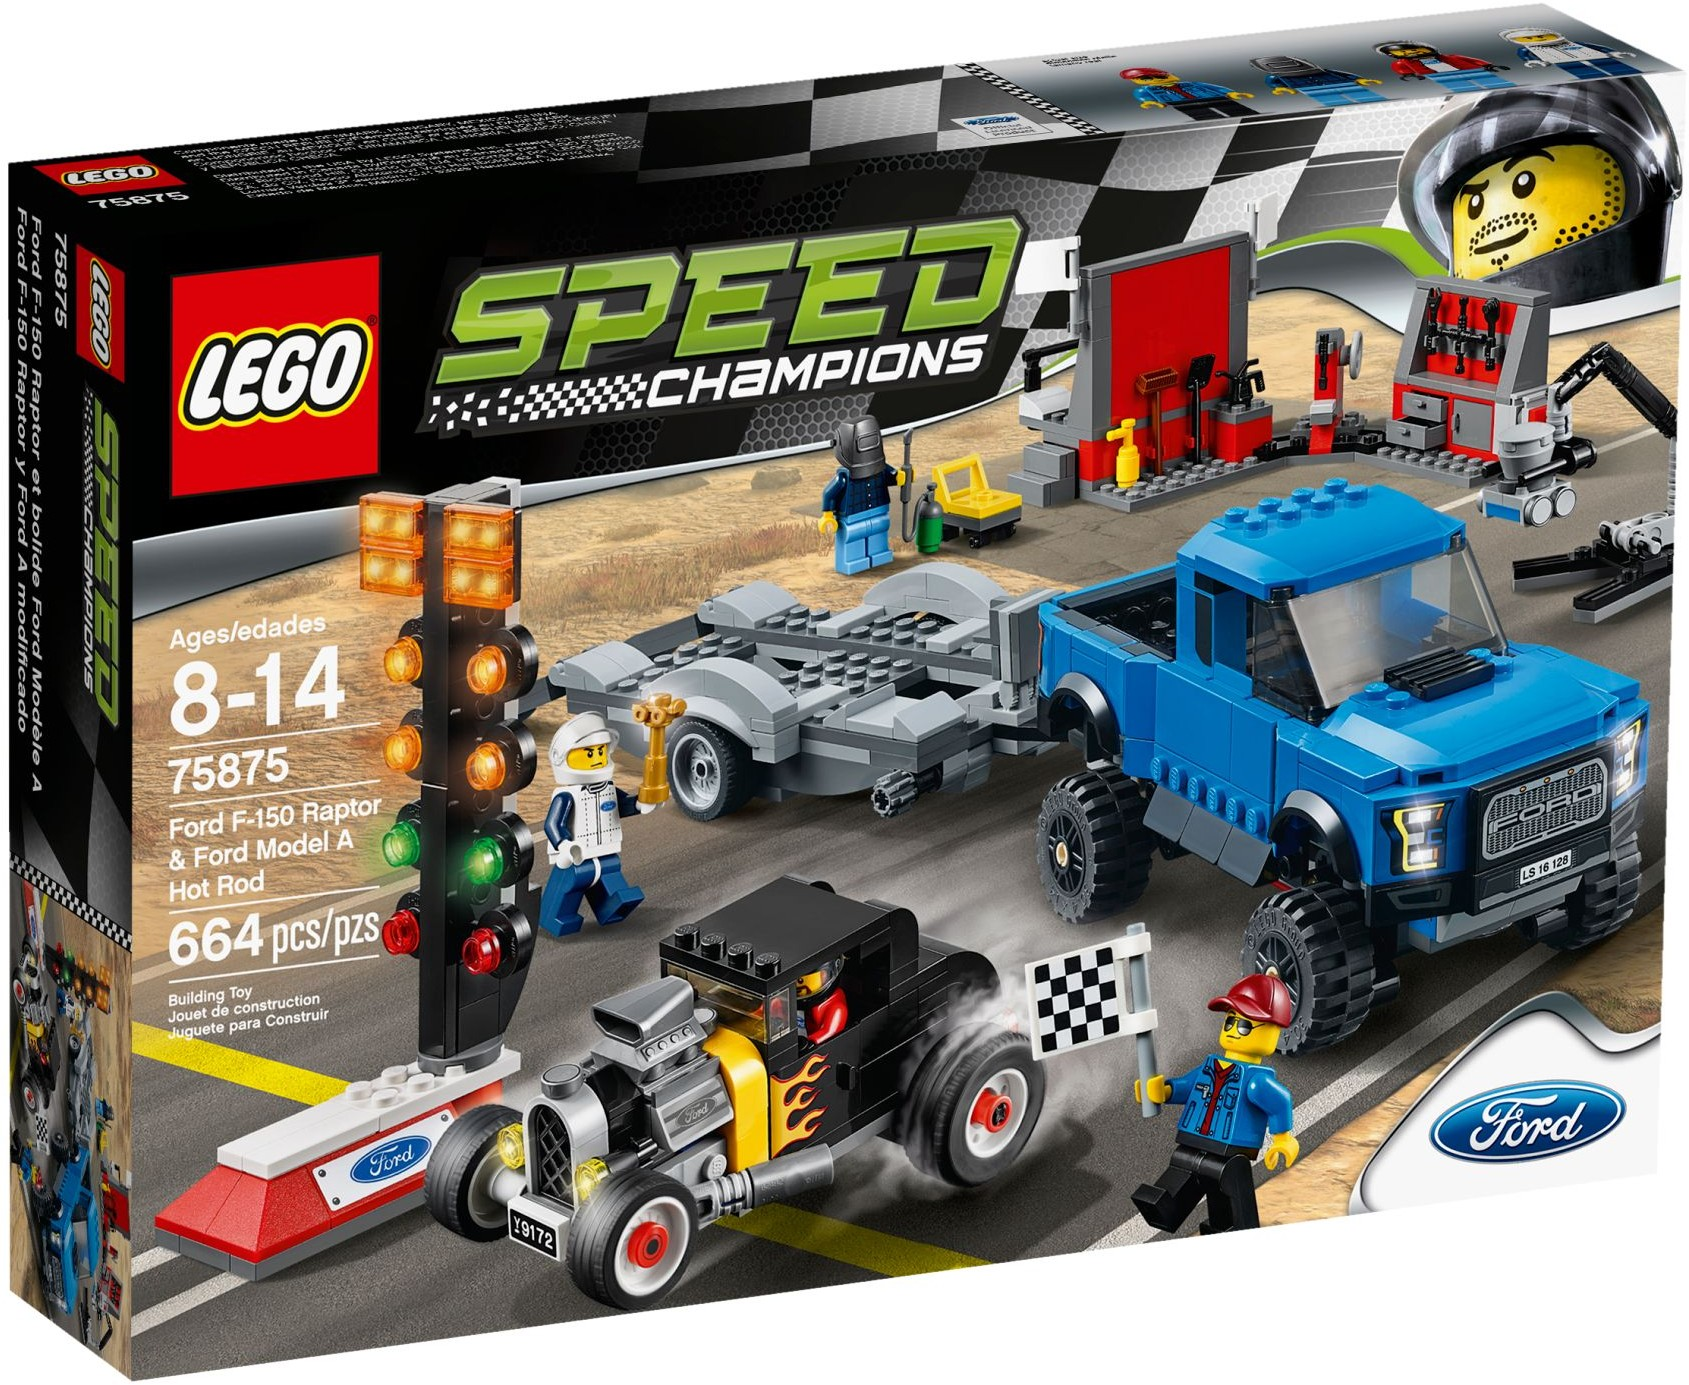 LEGO #75875 SPEED CHAMPION Ford F-150 Raptor & Ford Model A Hot Rod